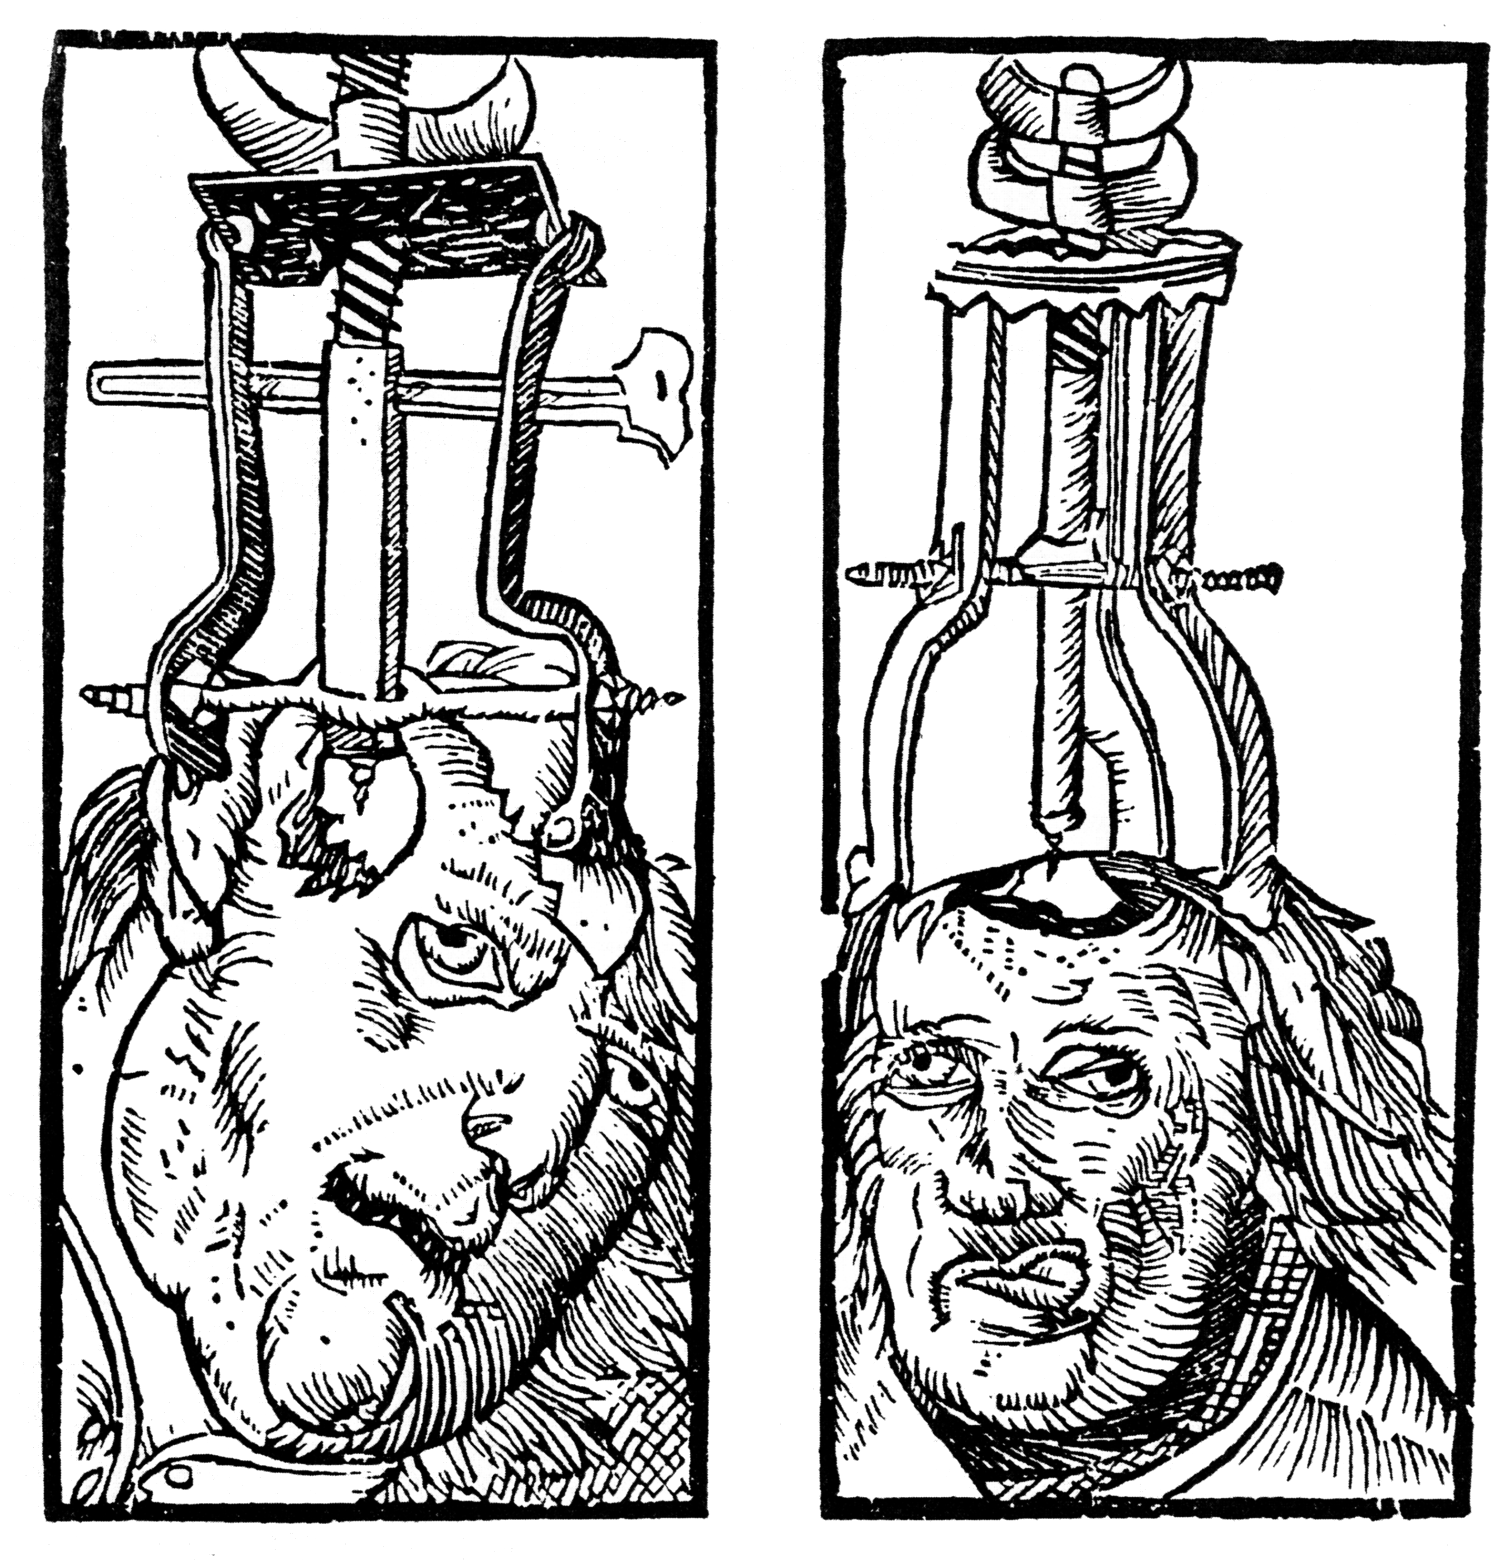 1525 engraving of trepanation